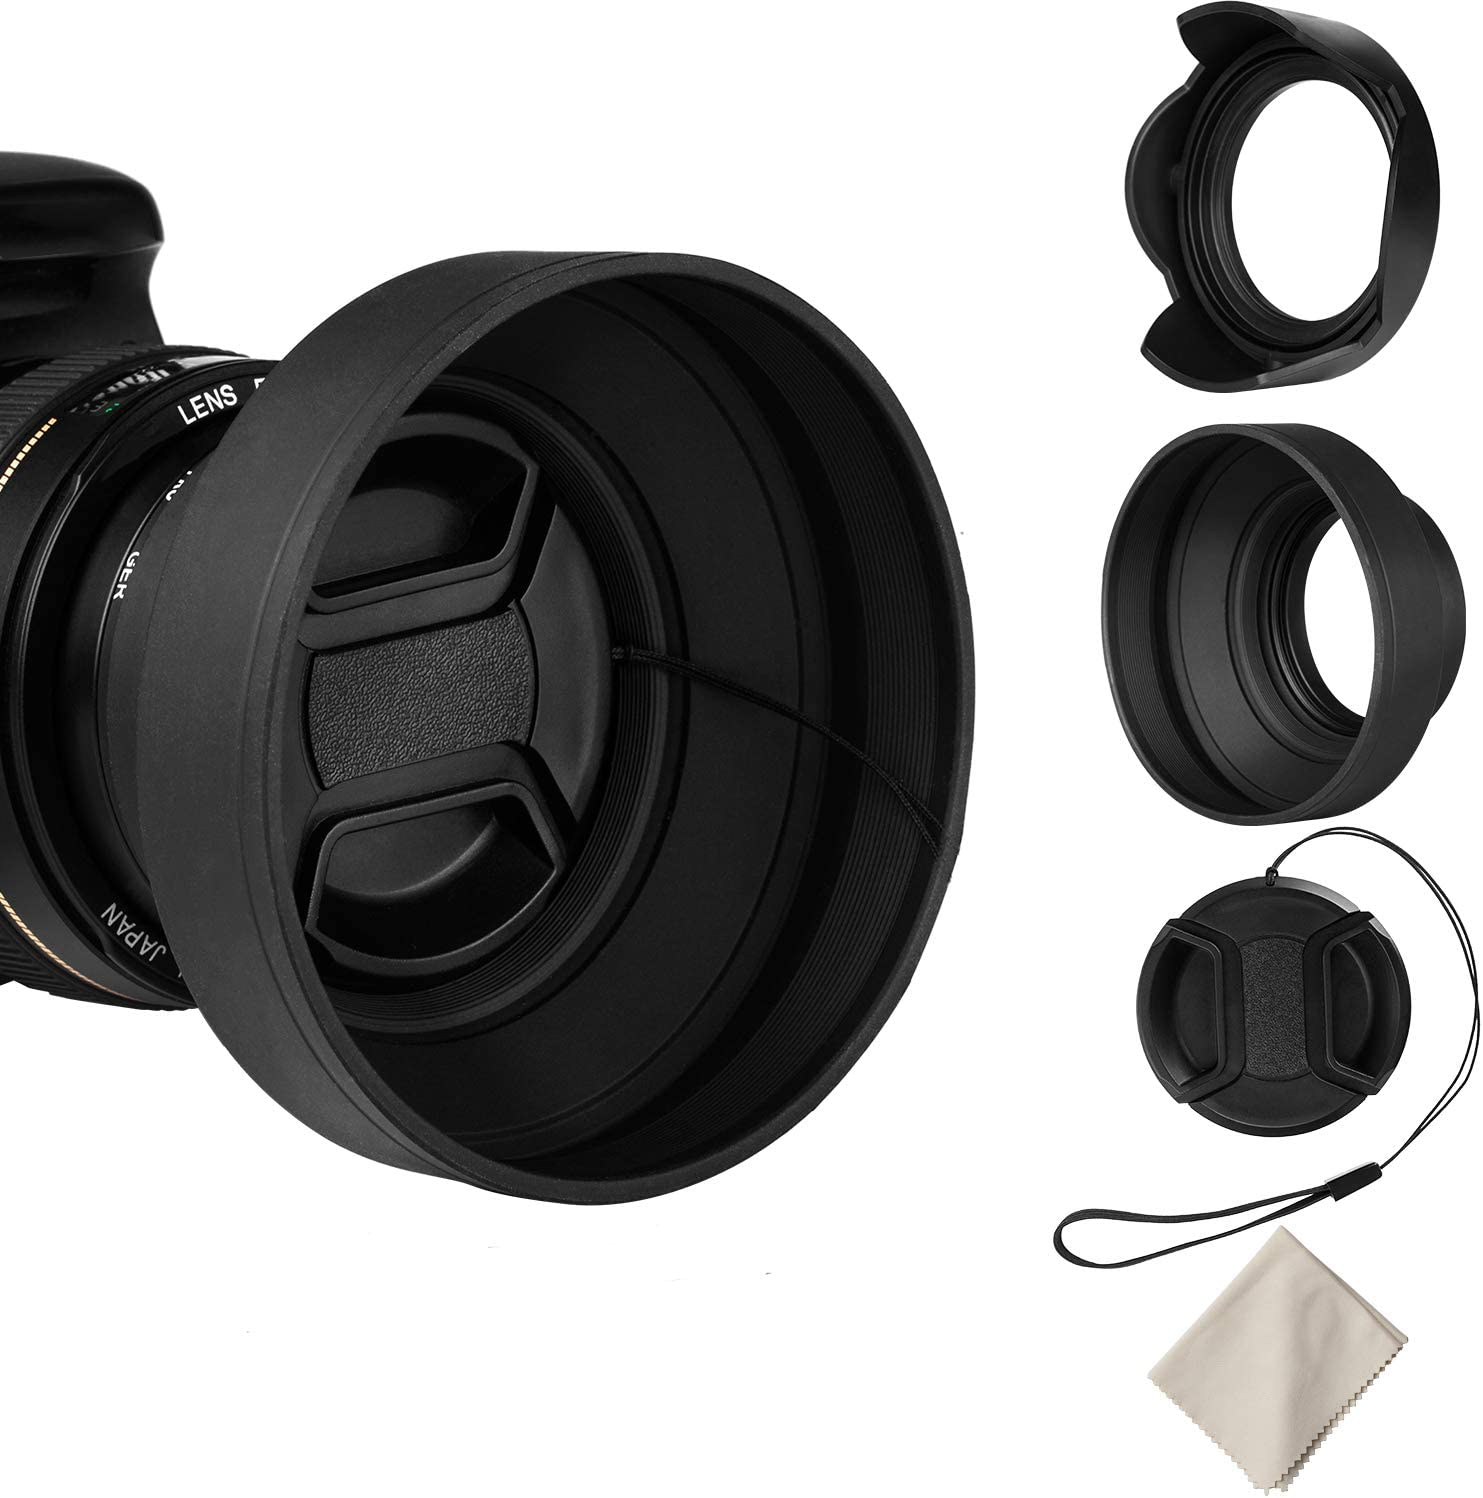 Veatree 52mm Lens Hood Set, Collapsible Rubber Lens Hood with Filter Thread + Reversible Tulip Flower Lens Hood + Center Pinch Lens Cap + Microfiber Lens Cleaning Cloth